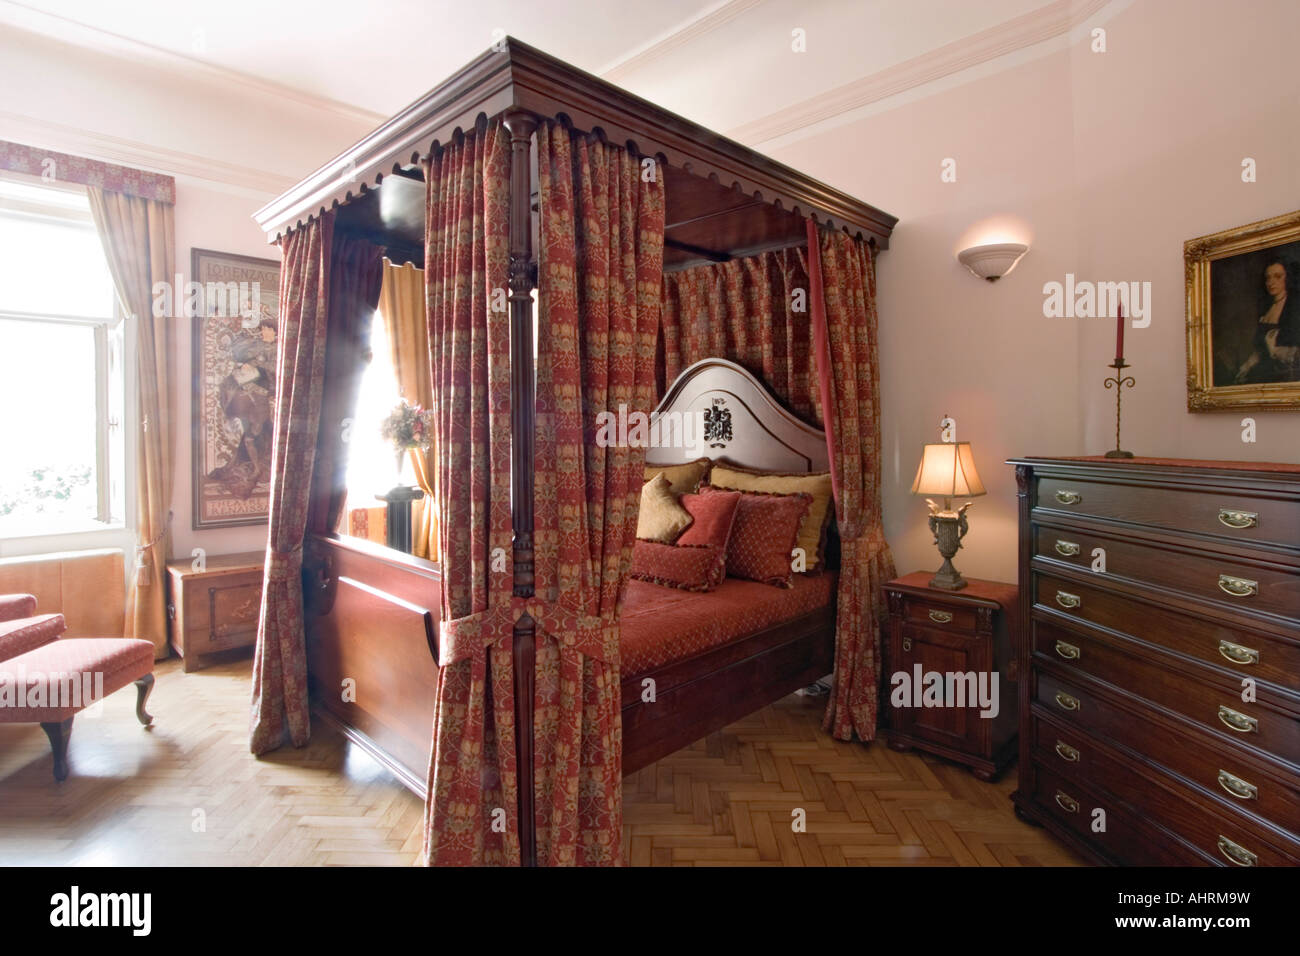 Bedroom with four poster bed - Stock Image